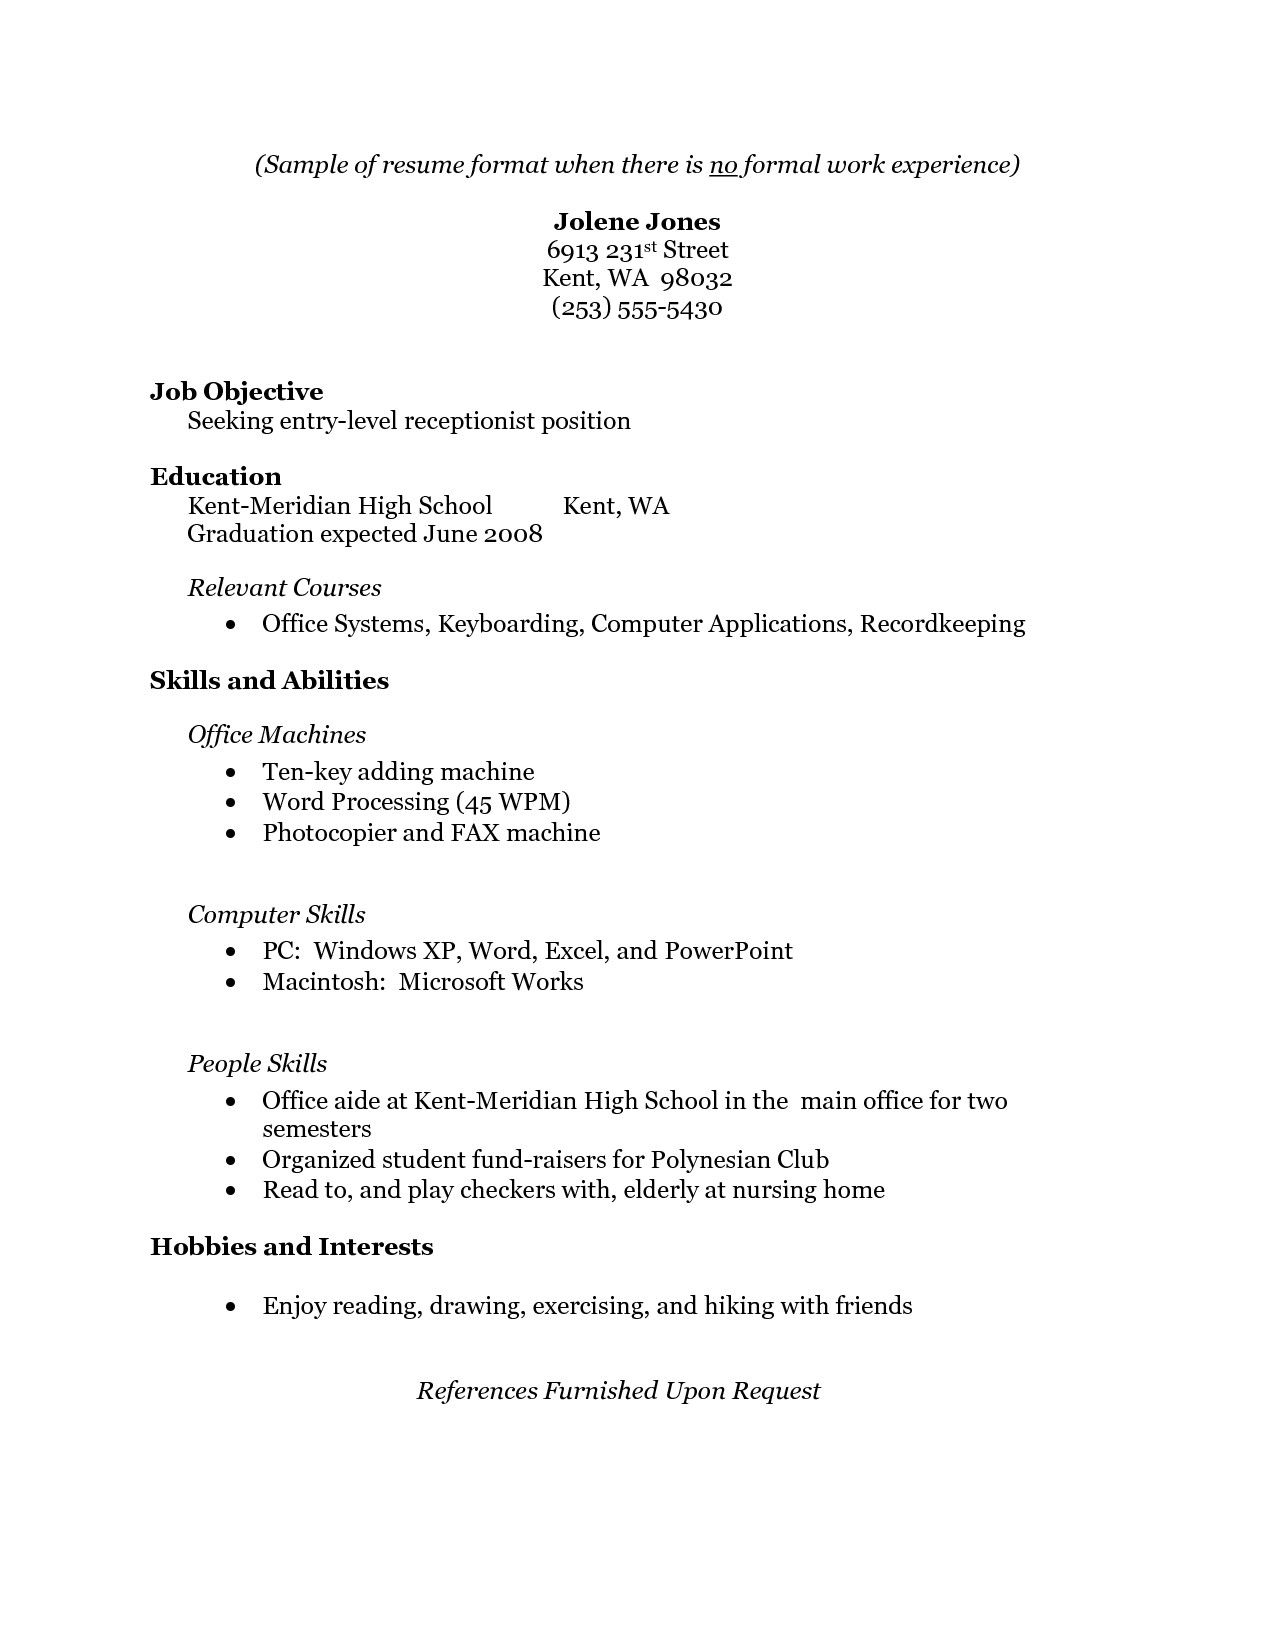 Resume Templates With No Experience